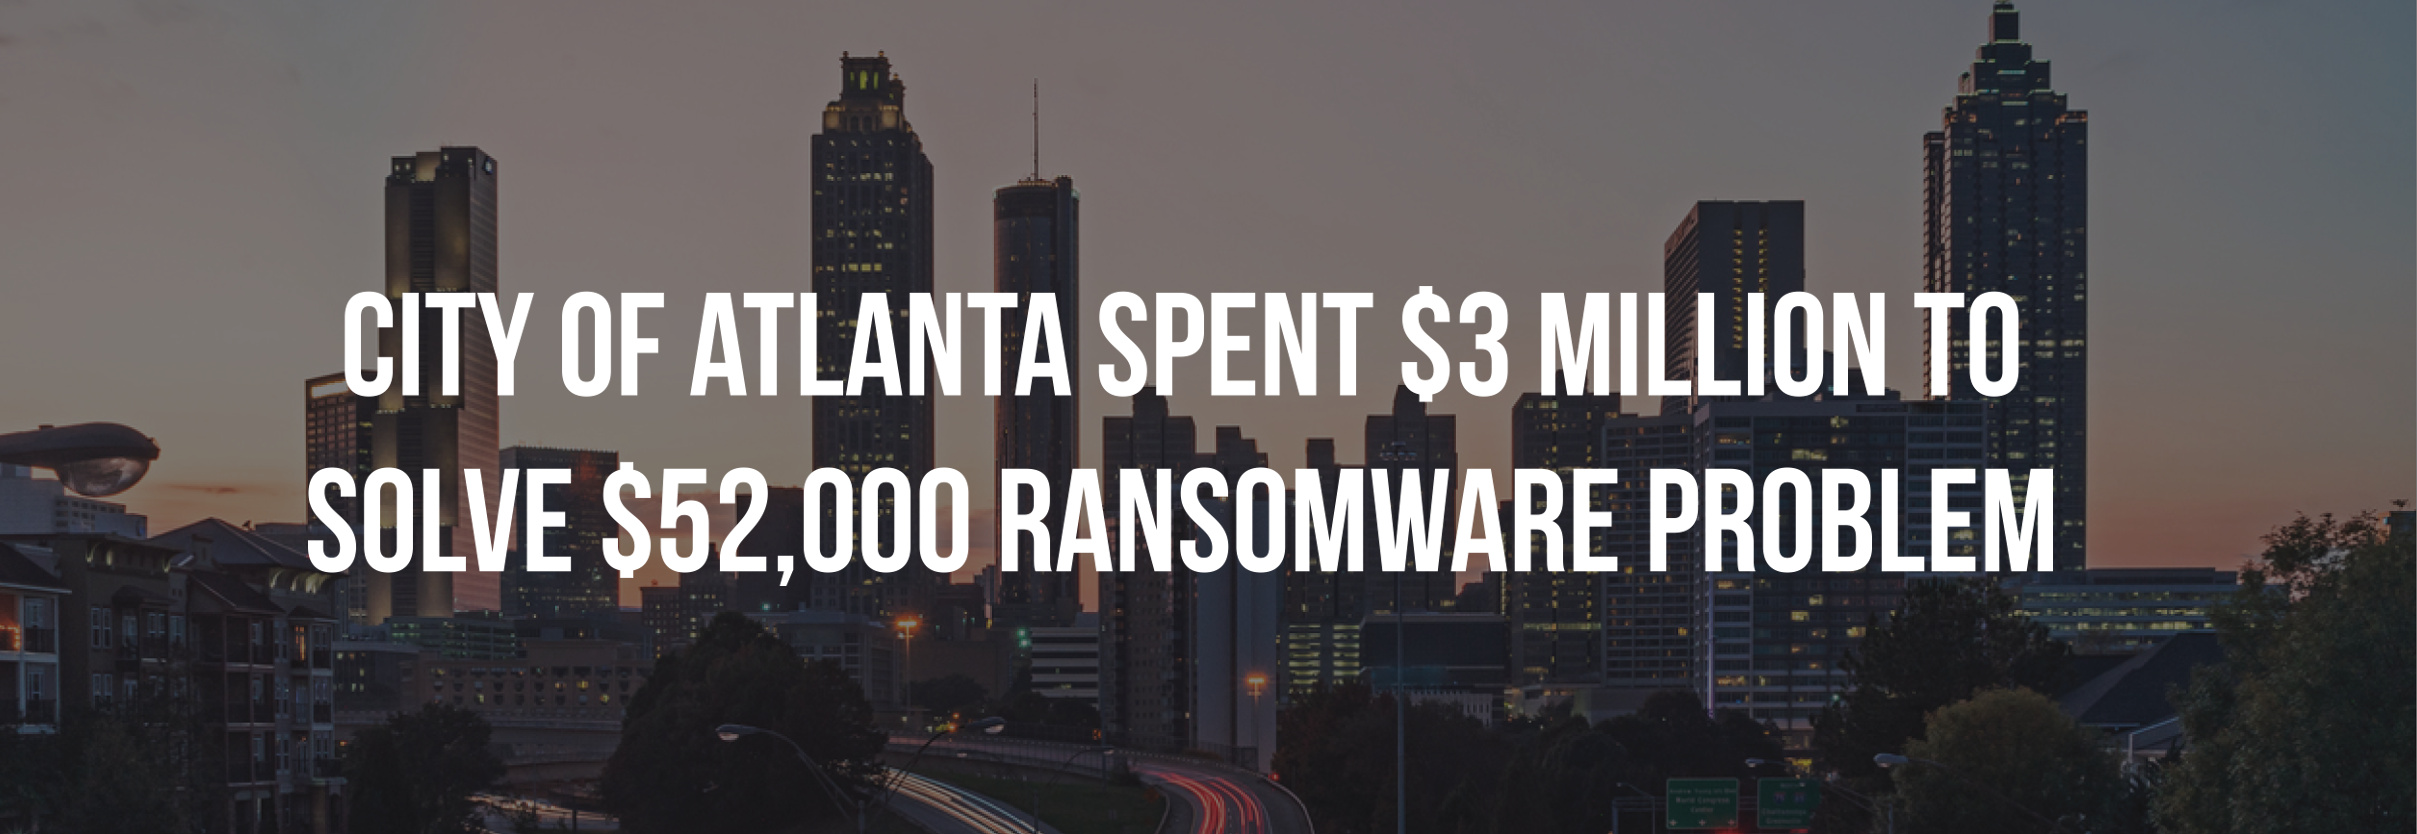 City Of Atlanta Spent $3 Million to Solve $52,000 Ransomware Problem